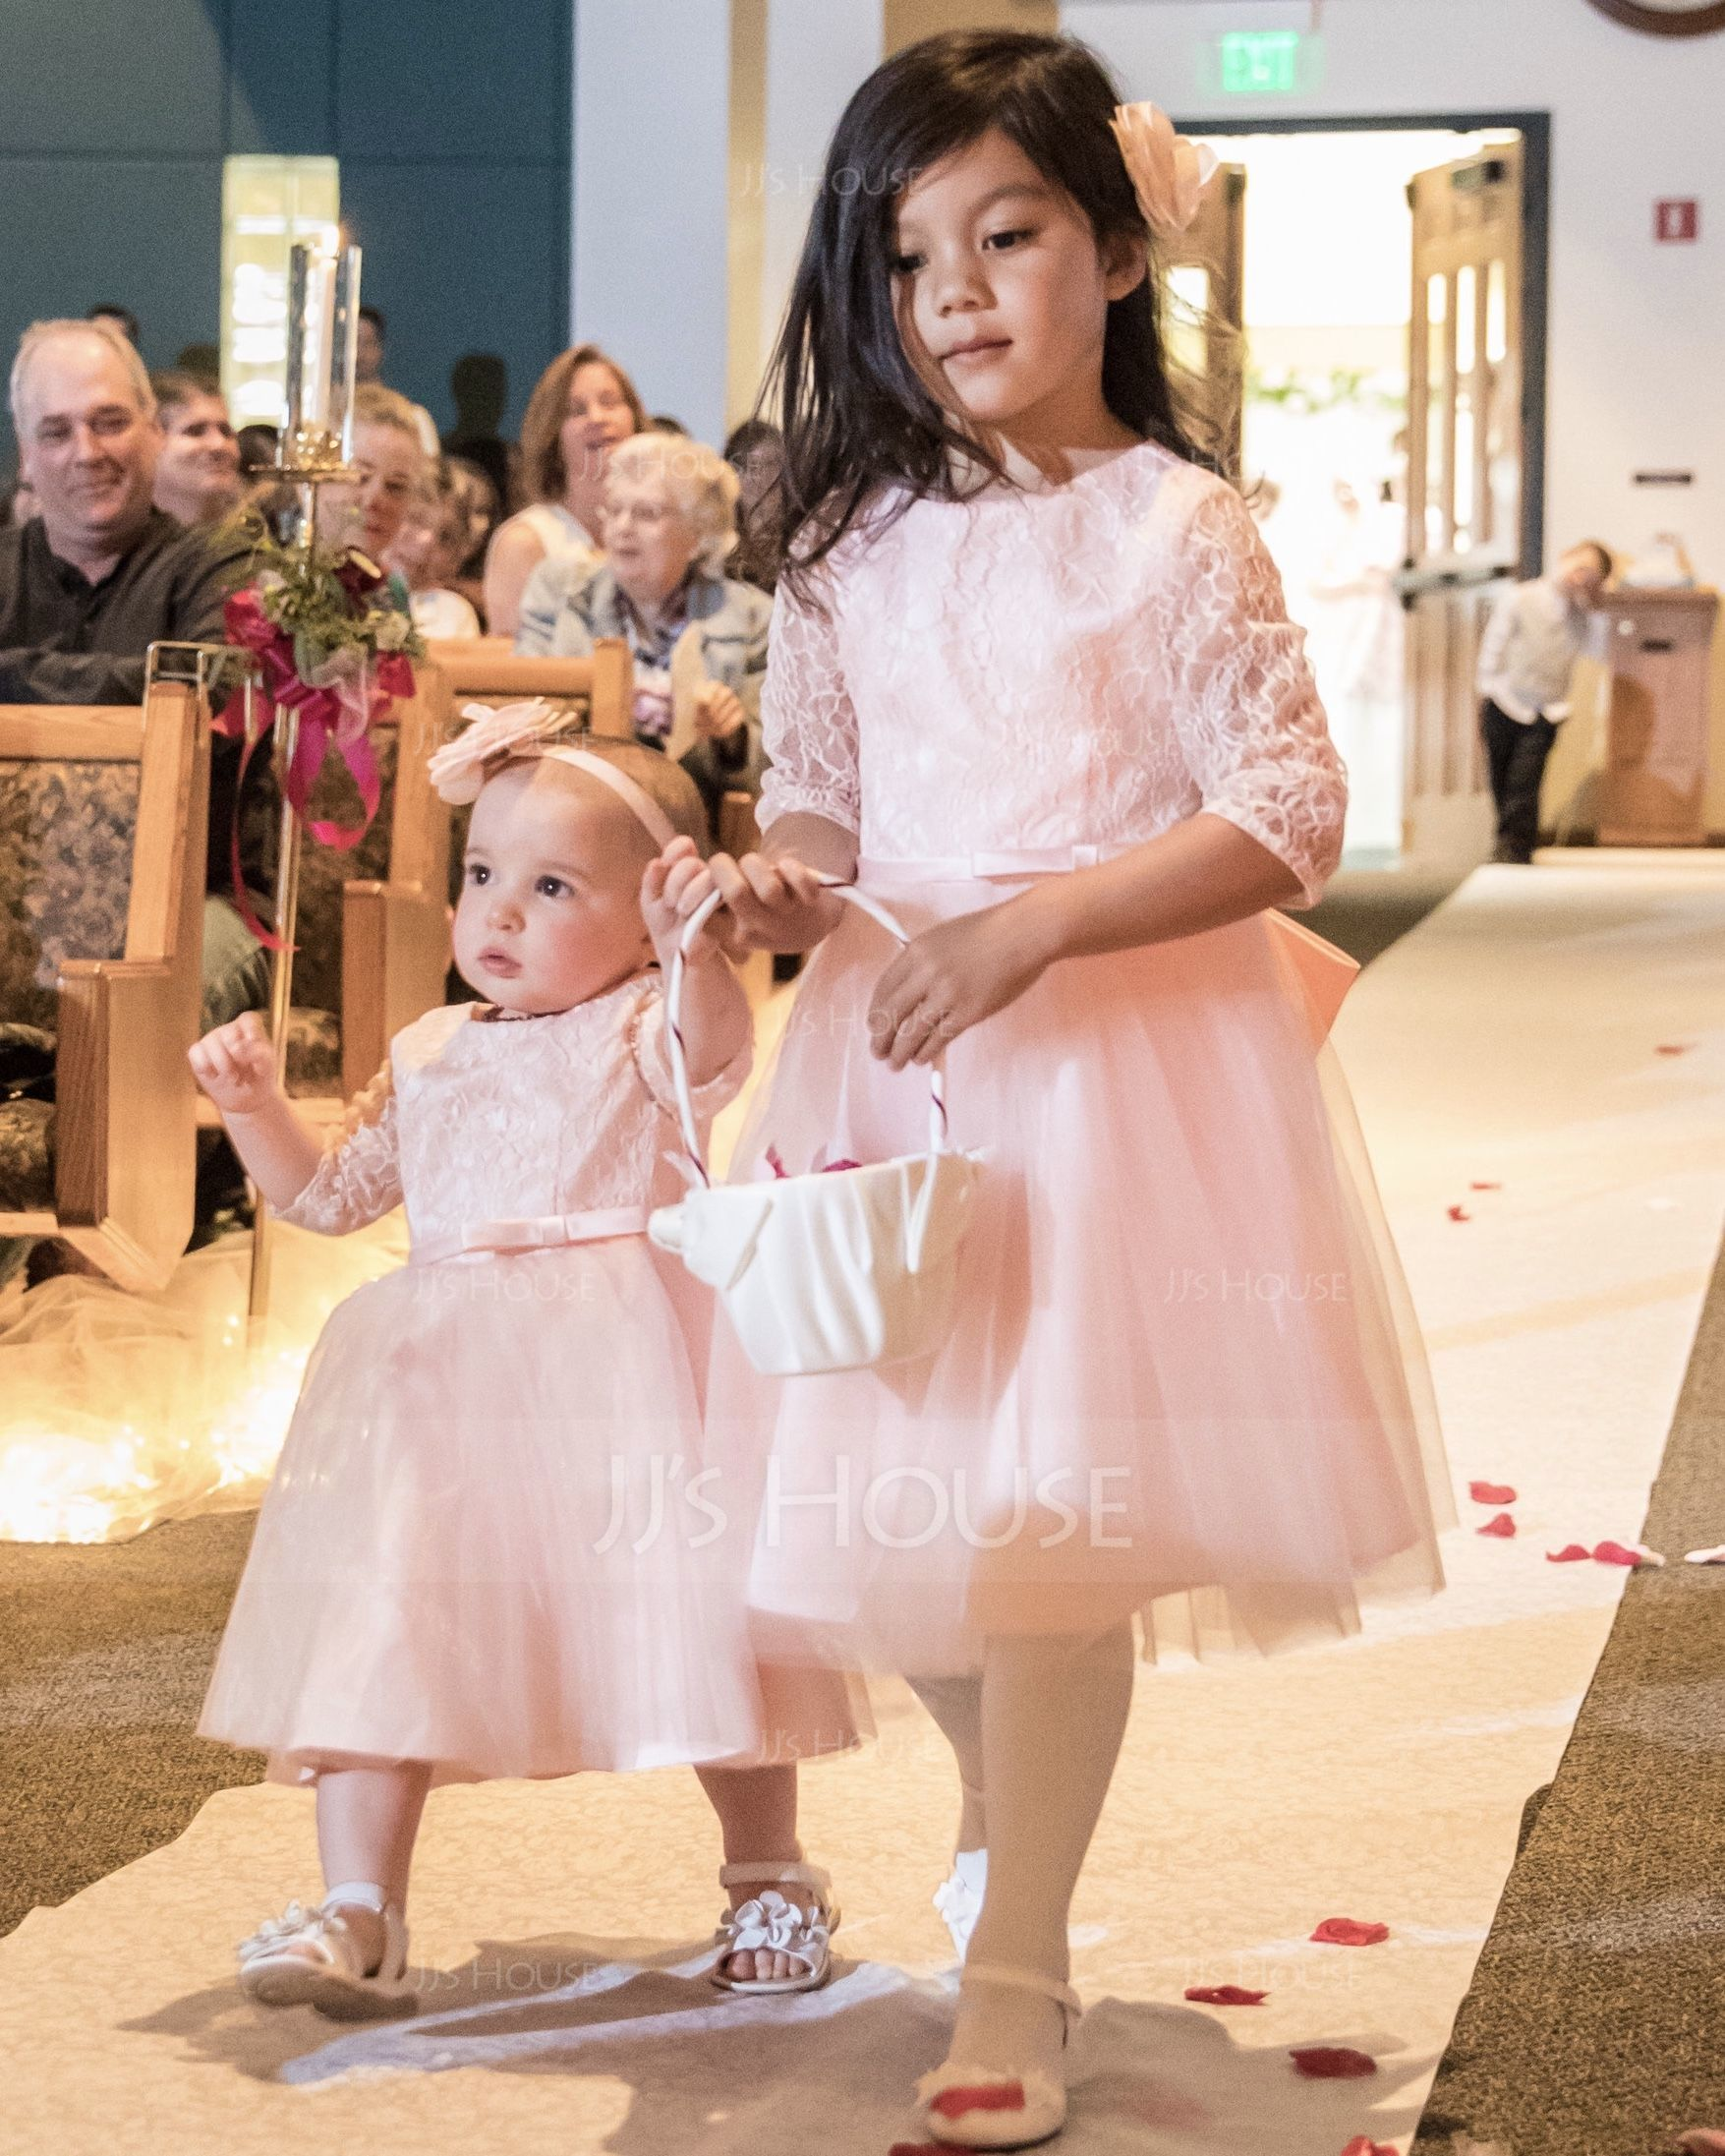 A-Line/Princess Knee-length Flower Girl Dress - Satin Tulle Lace 3/4 Sleeves Scoop Neck With Bow(s) (269183993)